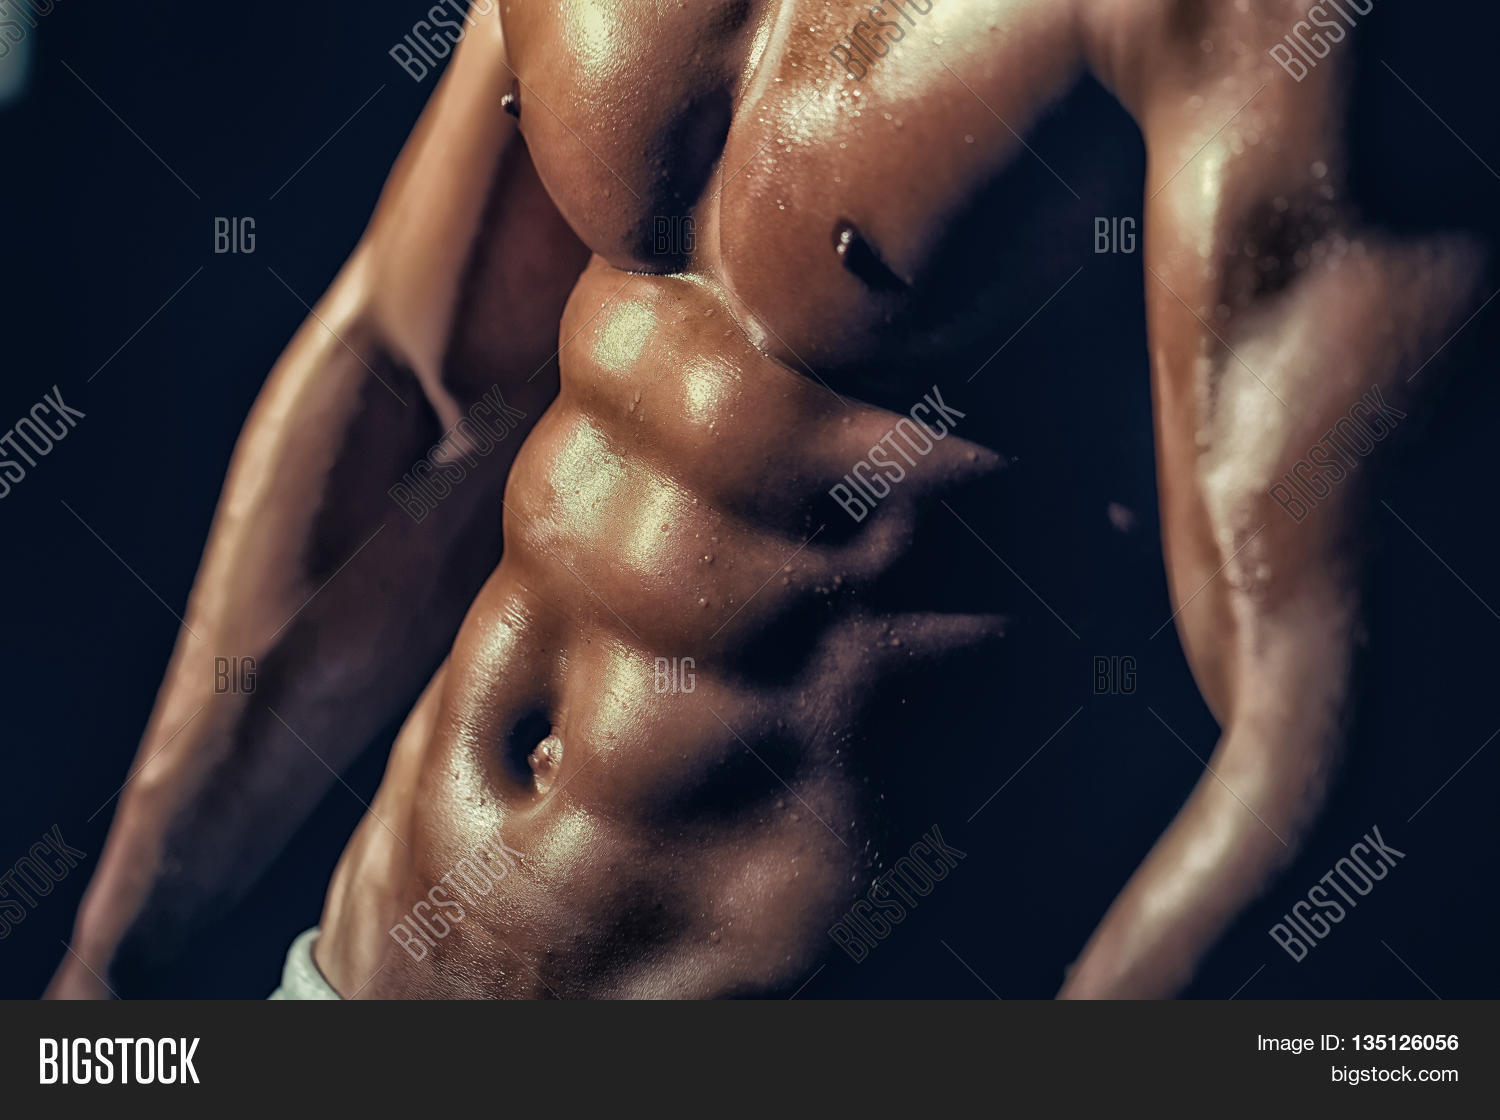 Muscular Male Wet Image Photo Free Trial Bigstock